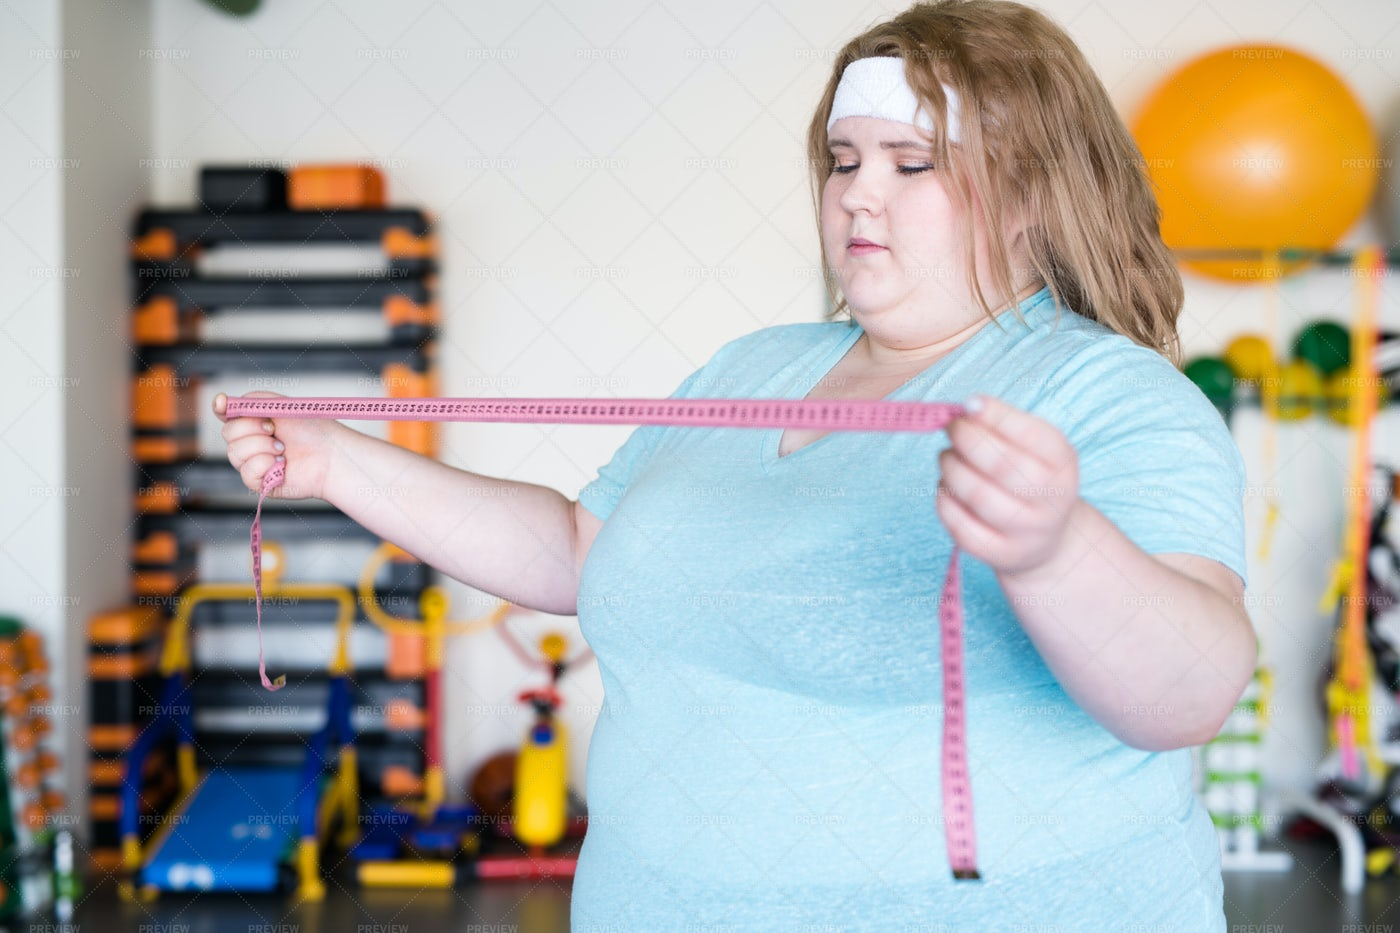 Obese Woman Holding Tape Measure: Stock Photos